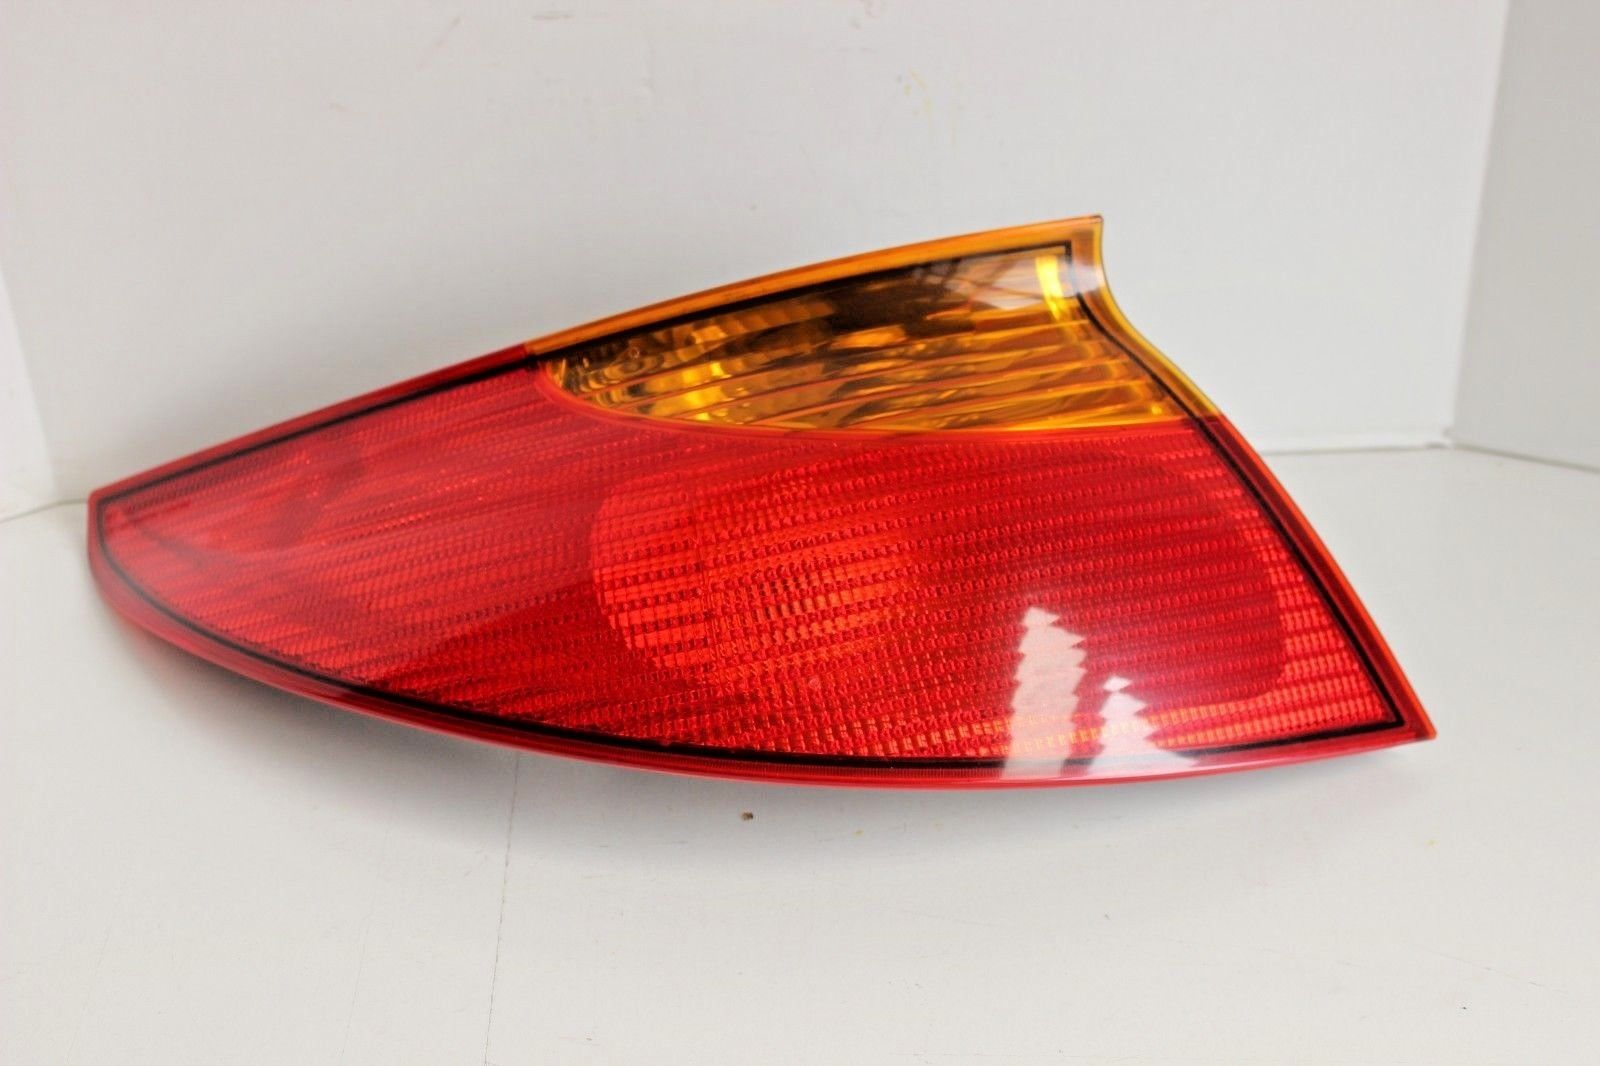 2001 2002 saturn s coupe sc1 sc2 lh left driver side outer tail light oem tail light socket how to fix car tail lights 7 steps